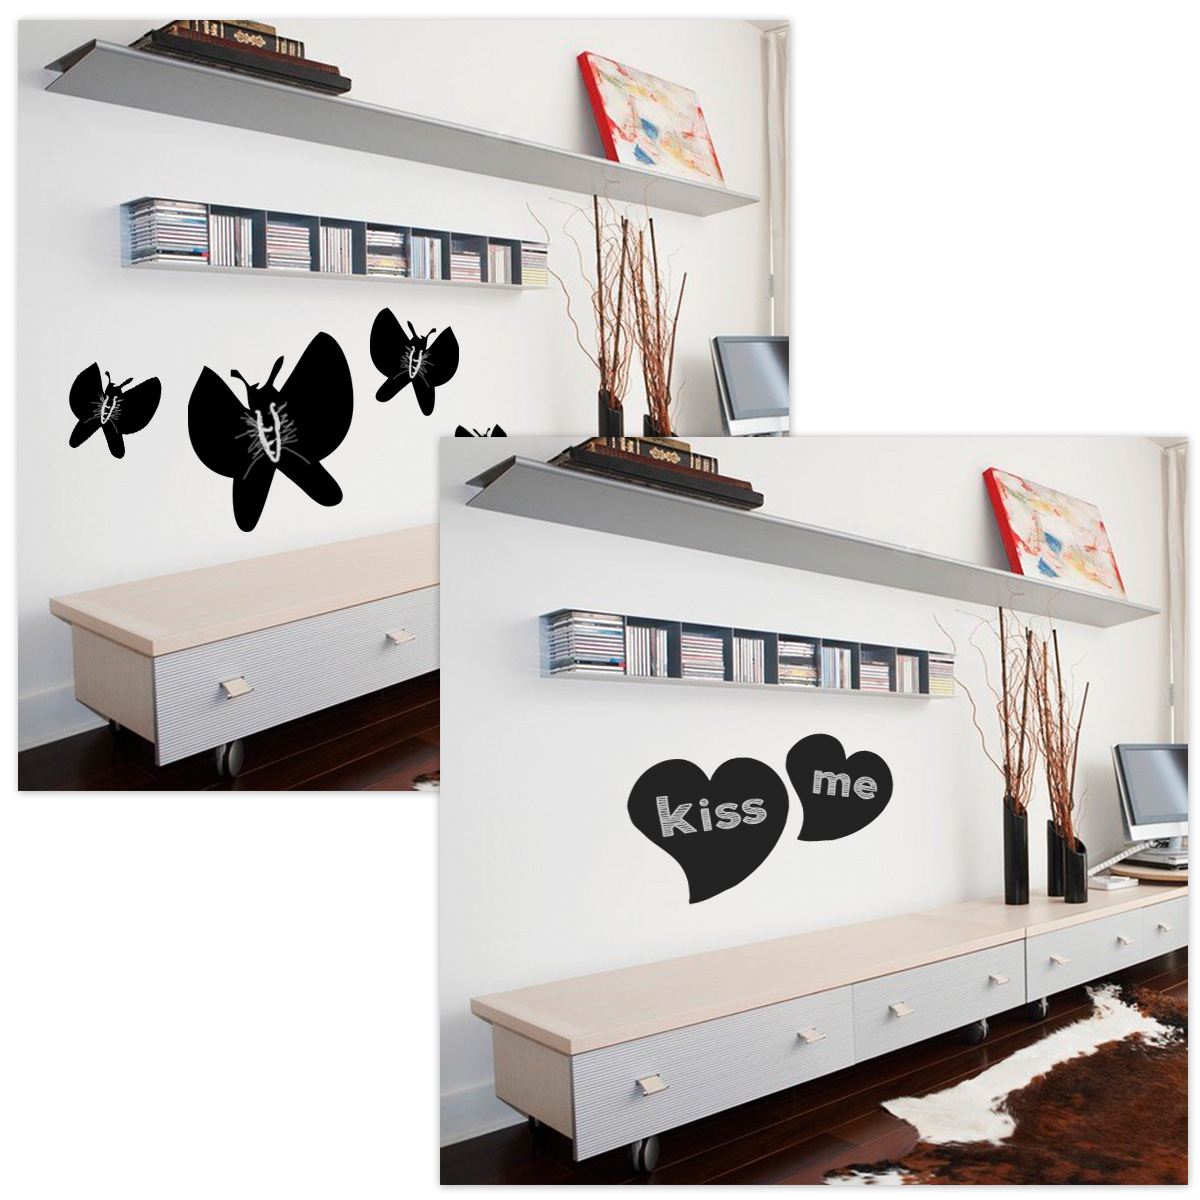 2m 60cm tafelfolie wandaufkleber selbstklebend tafel board. Black Bedroom Furniture Sets. Home Design Ideas